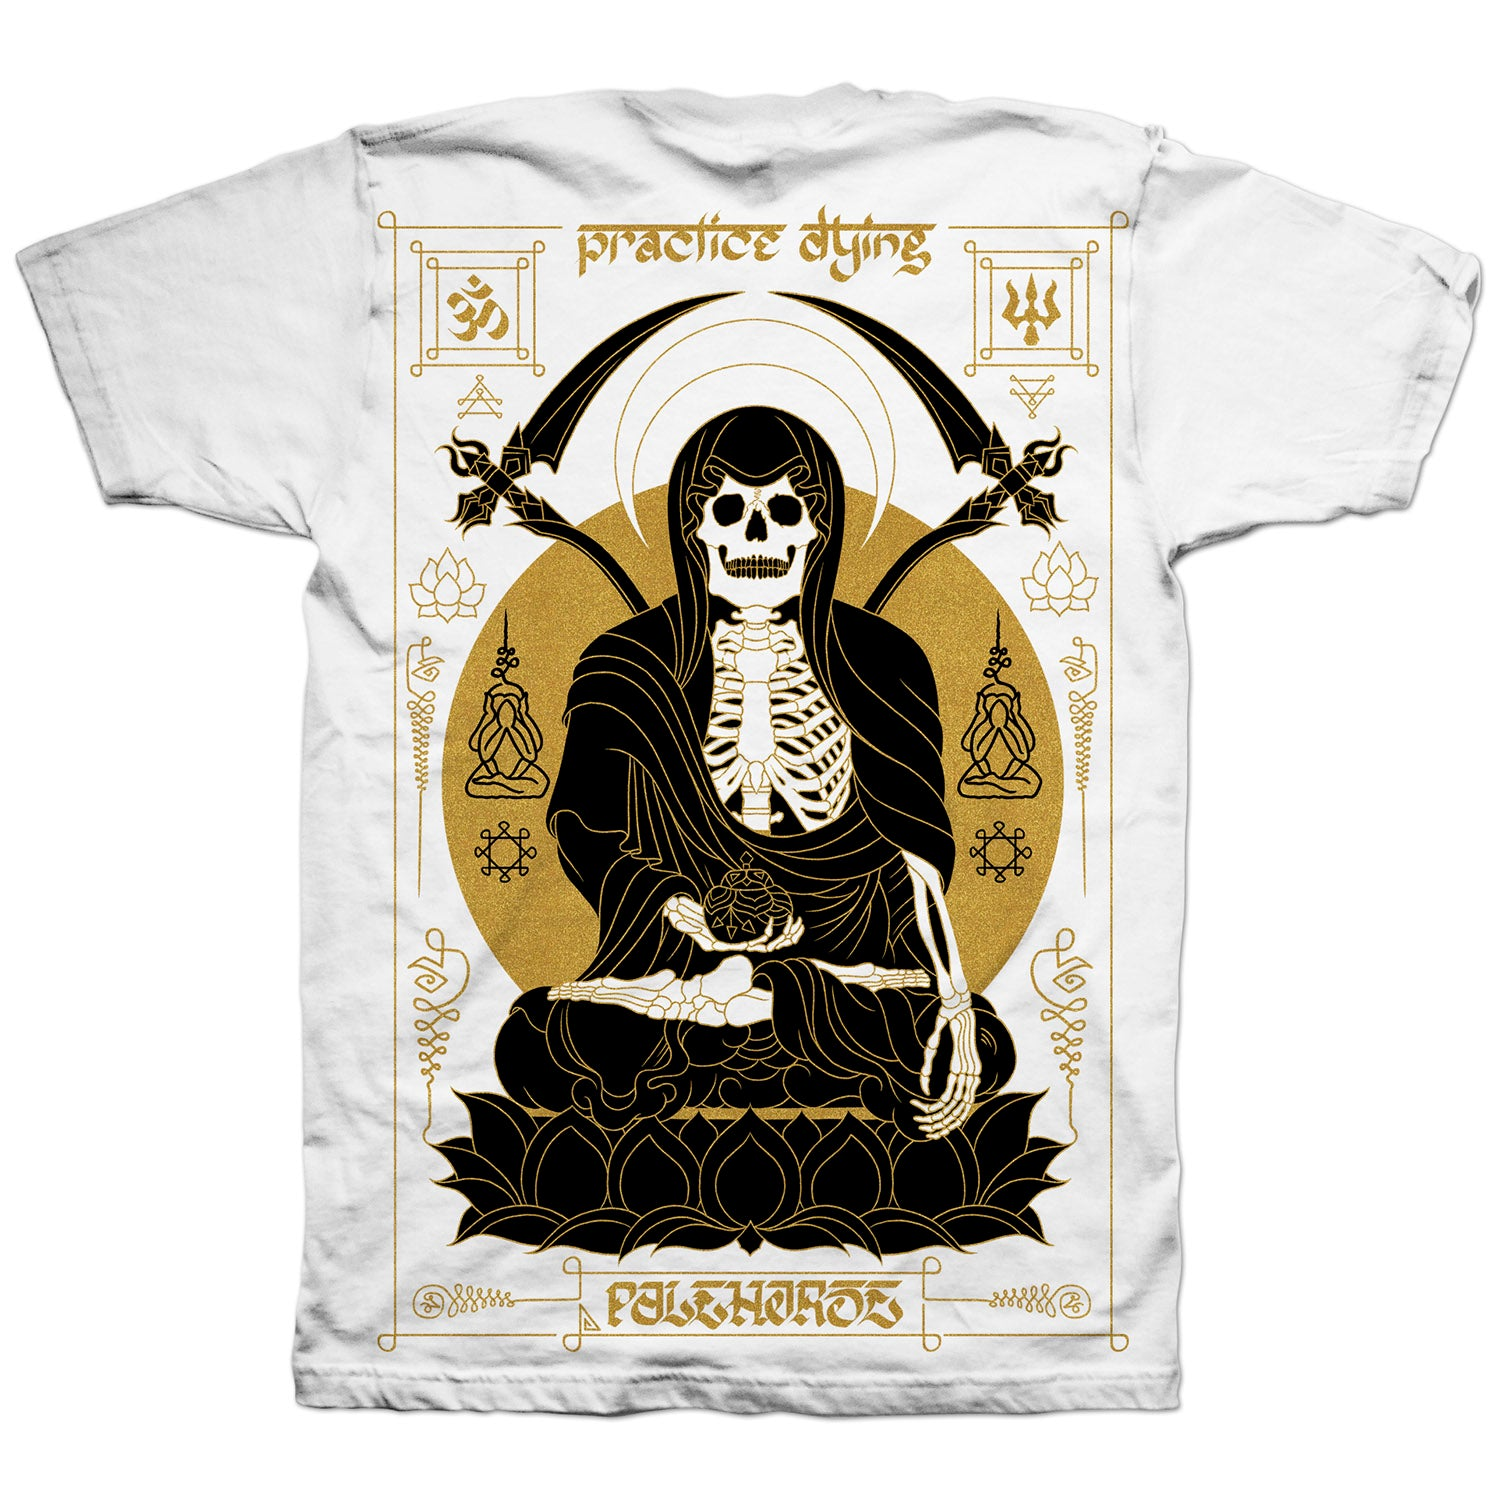 T-shirt: 'Practice Dying' White